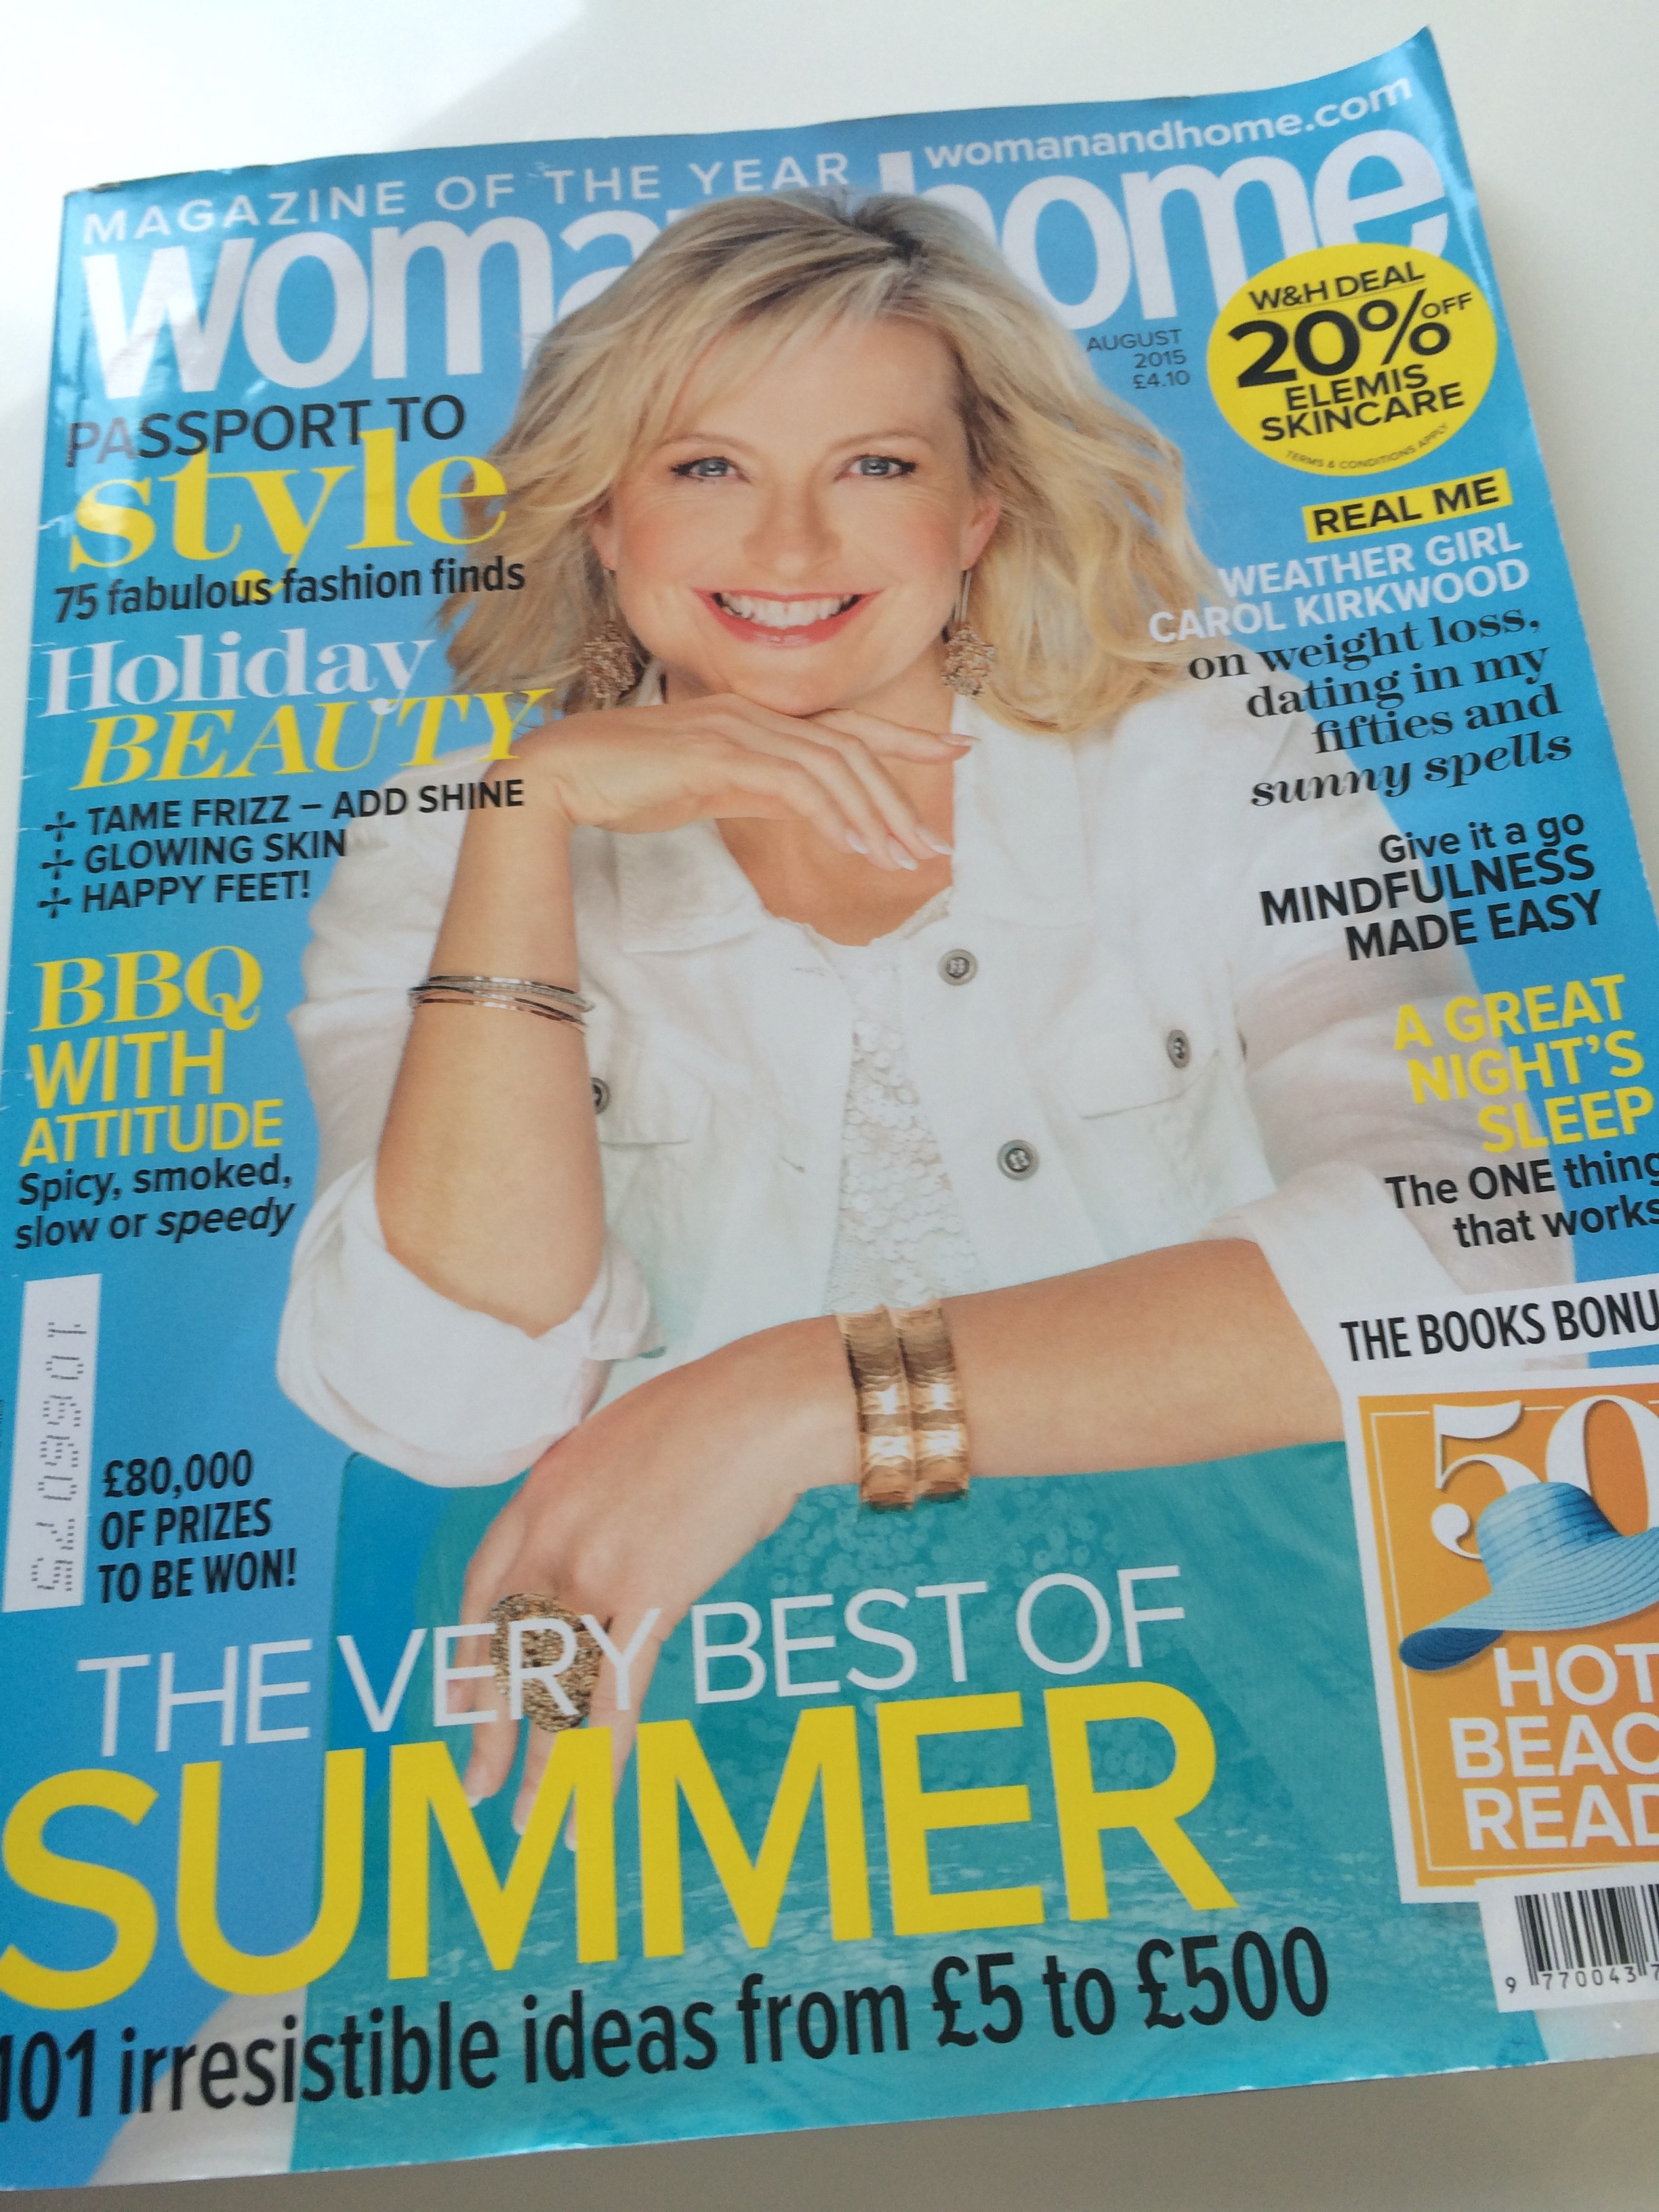 woman and home cover.jpg